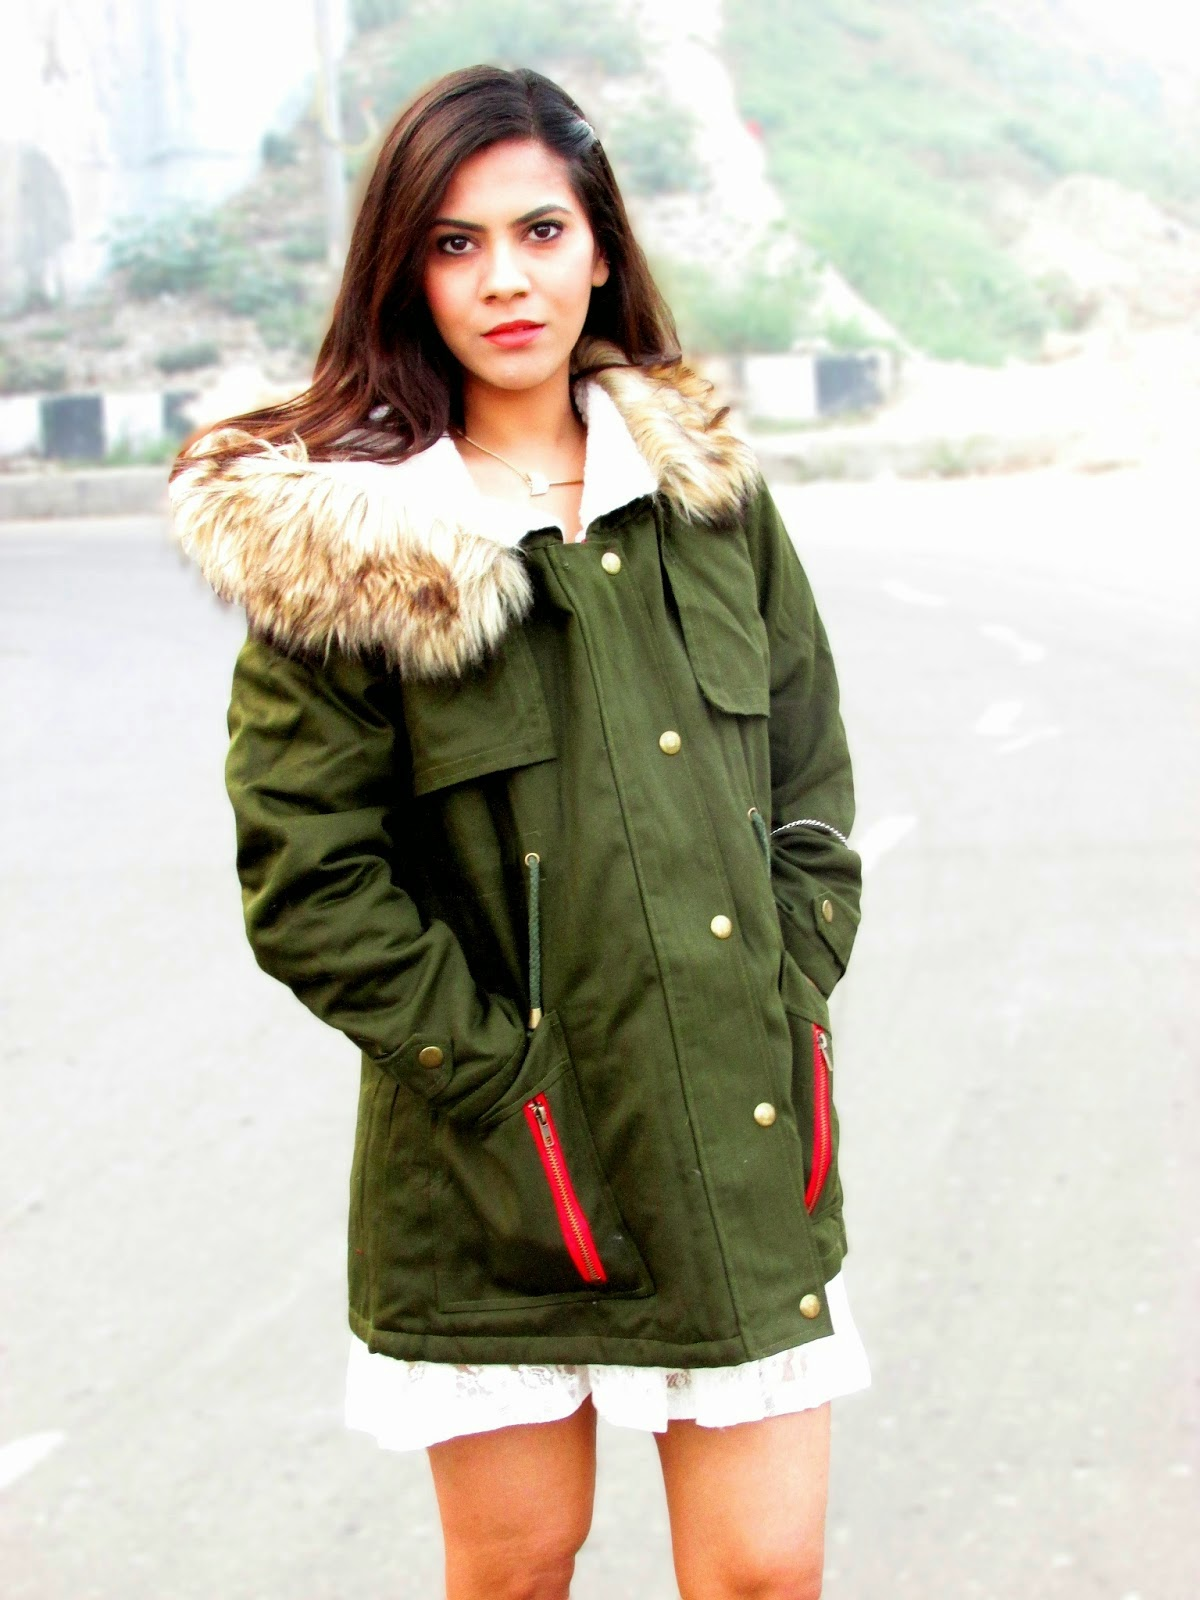 winter, winter outfits, fashion, winter fashion, winter trends 2015, sweaters, crop sweater, leopard coat, tartan, trench coat, new york coat, indian fashion blogger,beauty , fashion,beauty and fashion,beauty blog, fashion blog , indian beauty blog,indian fashion blog, beauty and fashion blog, indian beauty and fashion blog, indian bloggers, indian beauty bloggers, indian fashion bloggers,indian bloggers online, top 10 indian bloggers, top indian bloggers,top 10 fashion bloggers, indian bloggers on blogspot,home remedies, how to,long sweater, little black bag, kitty leggings, tartan leggings, peplum sweater, front open cardigan, yellow sweater, also sunglasses, long sweater, velvet legging, swede shoes, heavy jacket, paraka, azted sweater , bear ears jacket